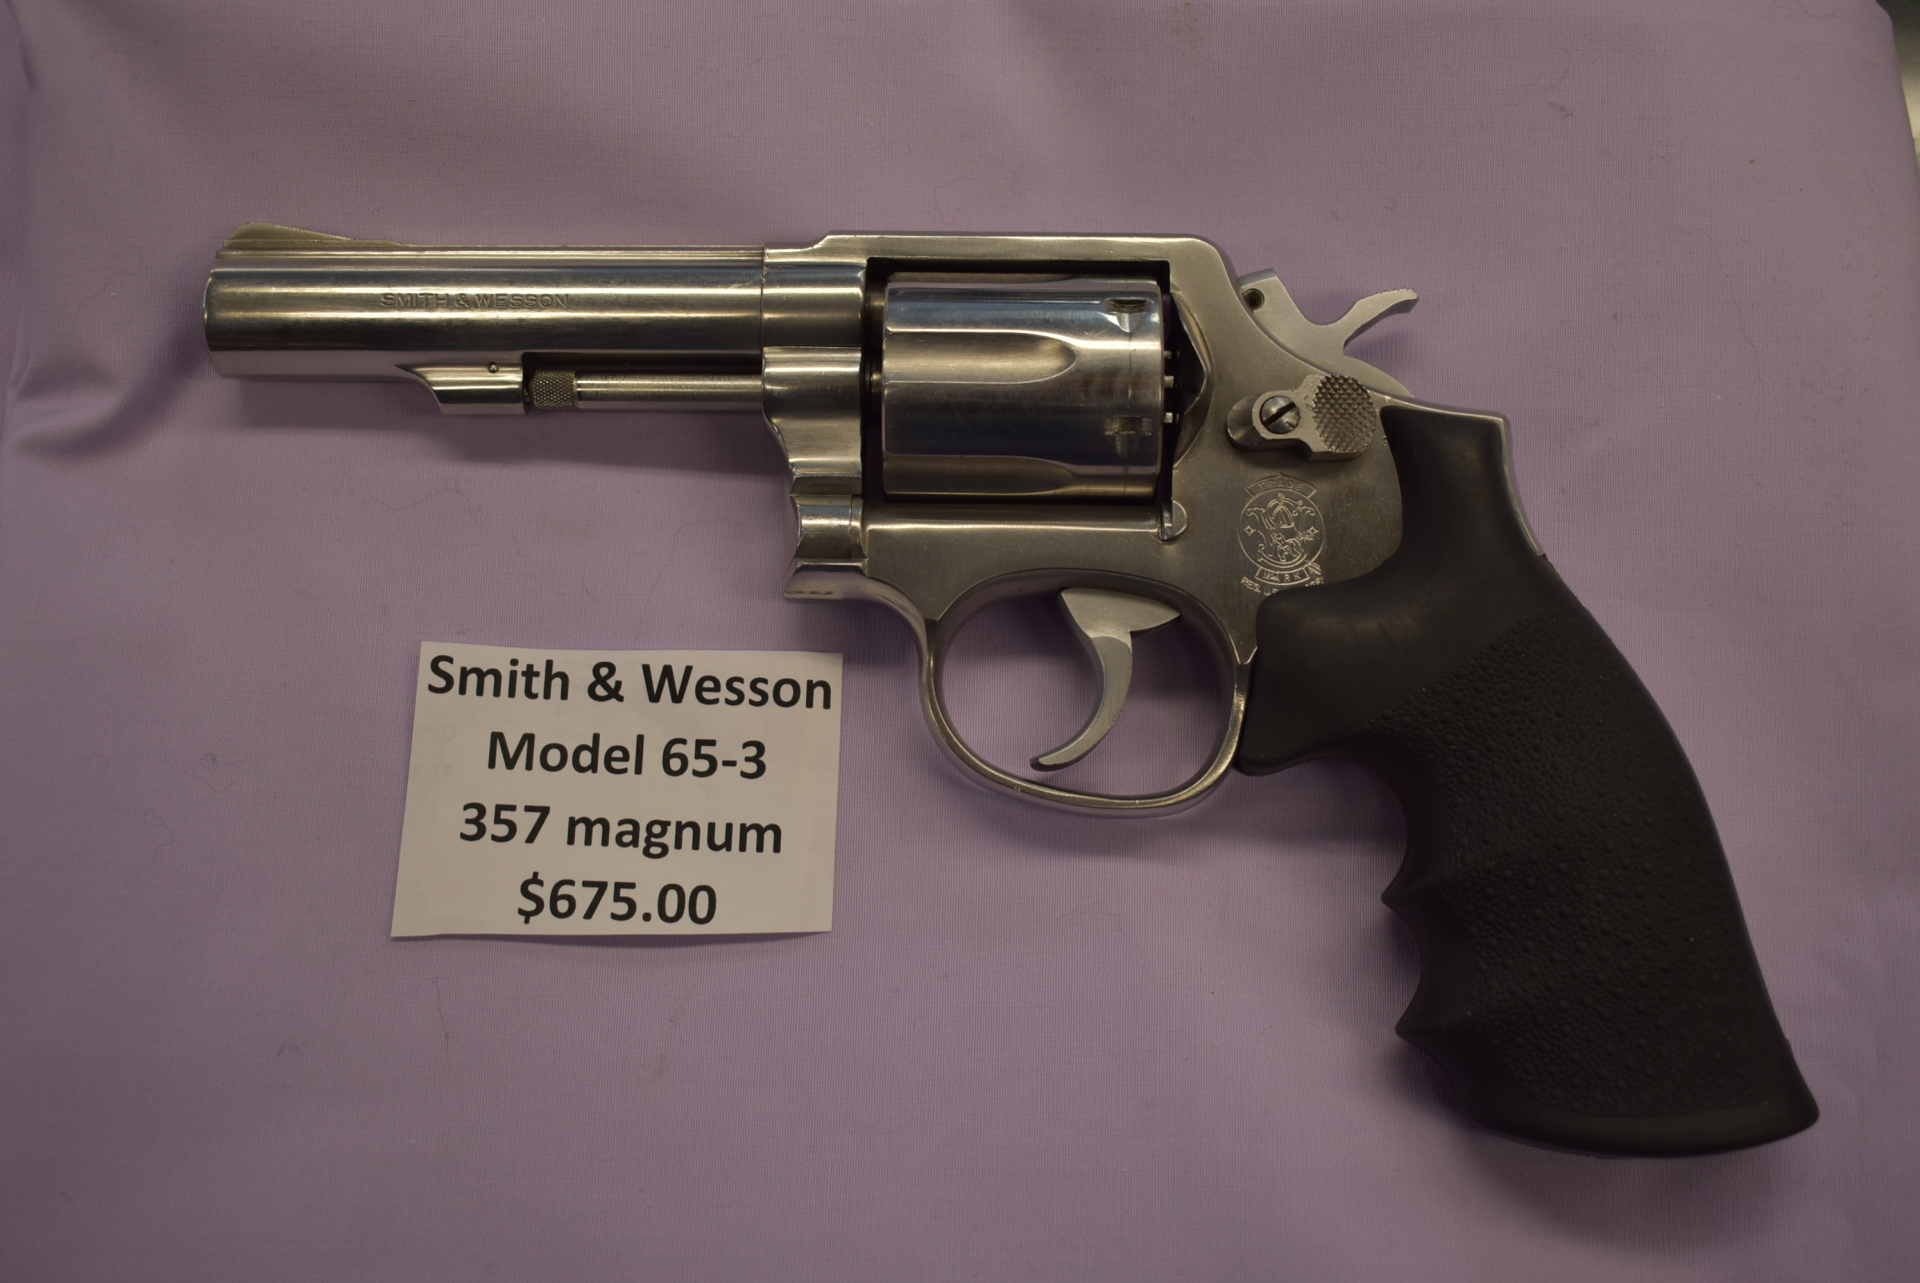 Smith & Wesson Model 65-3